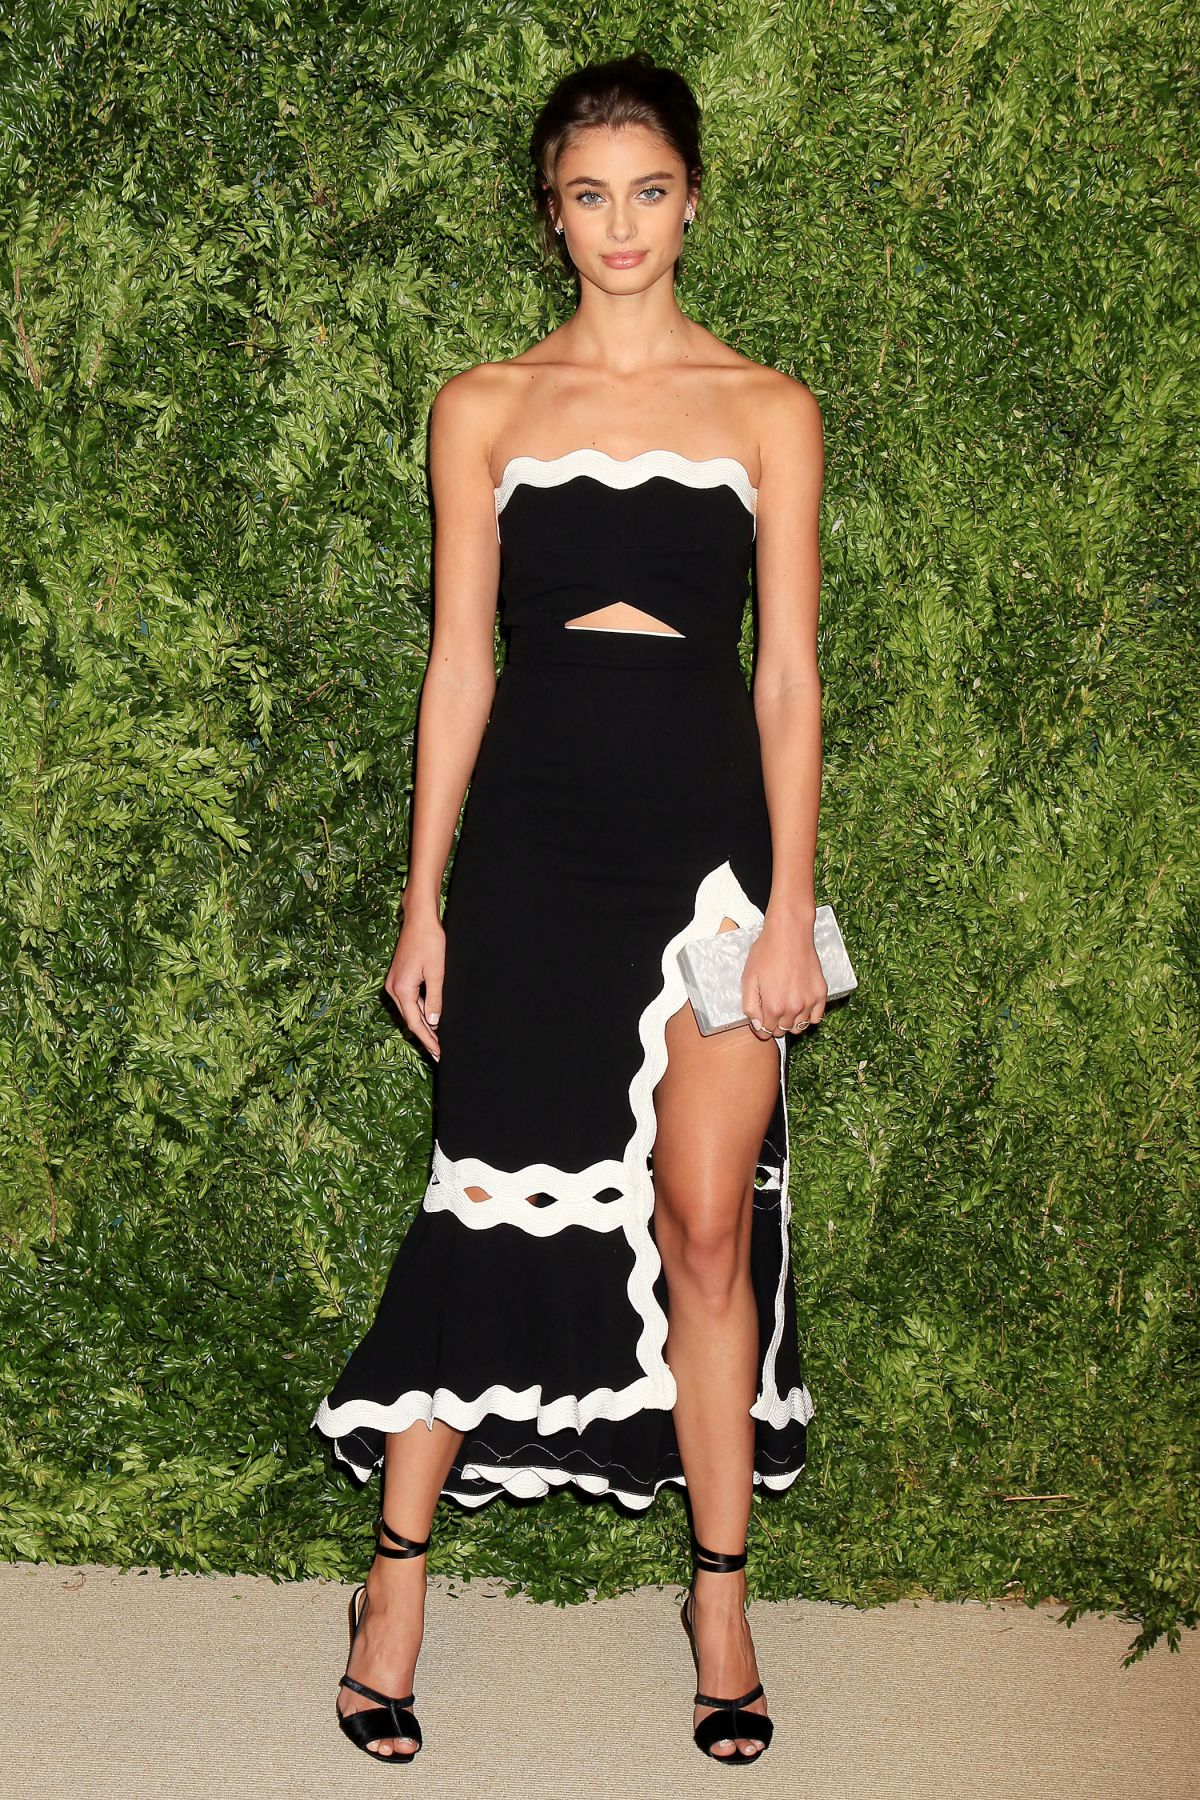 TAYLOR HILL at 12th Annual CFDA/Vogue Fashion Fund Awards in New York 11/02/2015